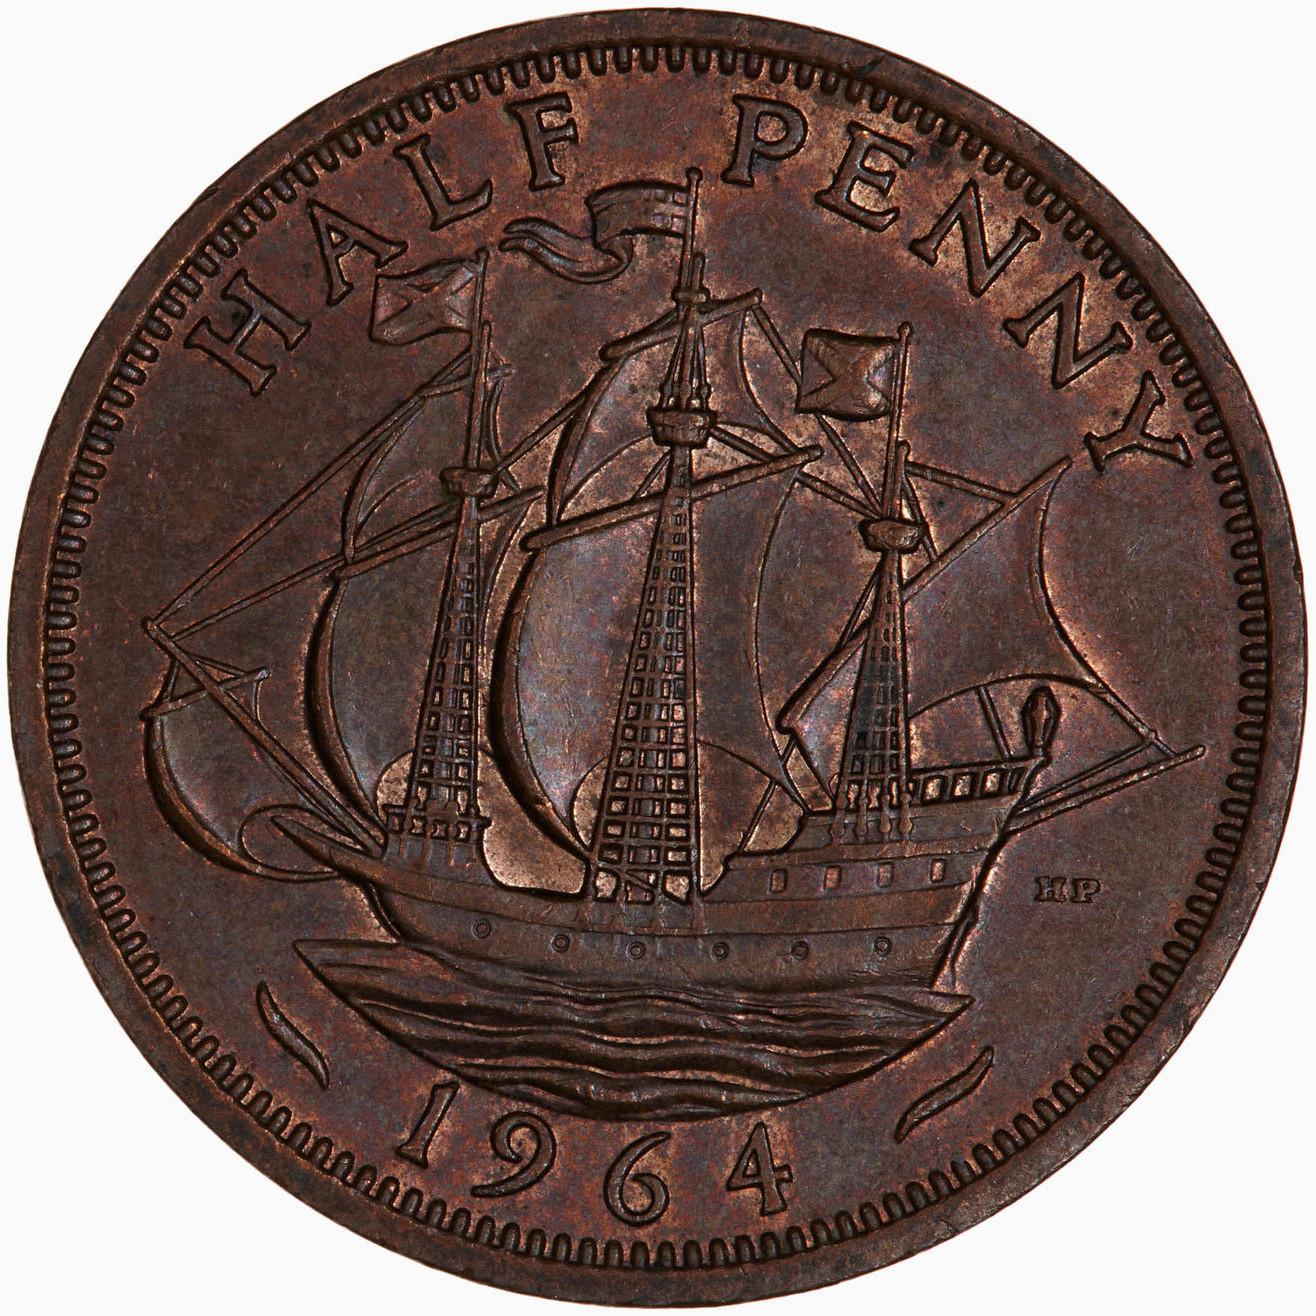 Halfpenny 1964: Photo Coin - Halfpenny, Elizabeth II, Great Britain, 1964